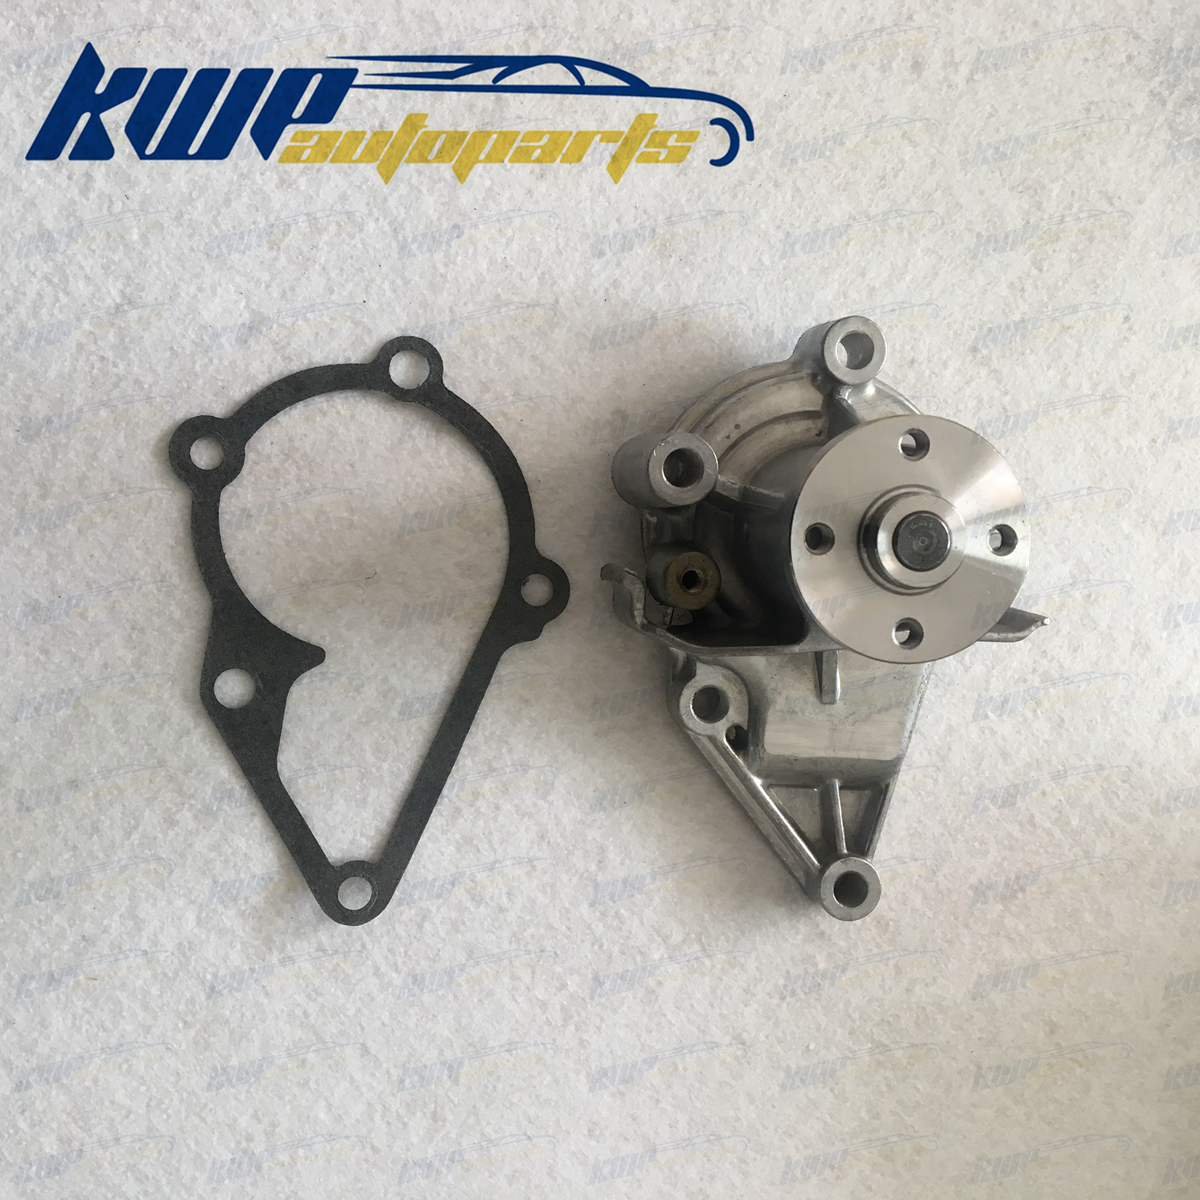 New Water Pump W Gasket For Ram 50 Mitsubishi Mighty Max 20l 24l 1983 Parts Diagram 4g64 G64b 83 96 Gwm 23a Md041041 Md997079 Md997080 Aw7114 In Timing Components From